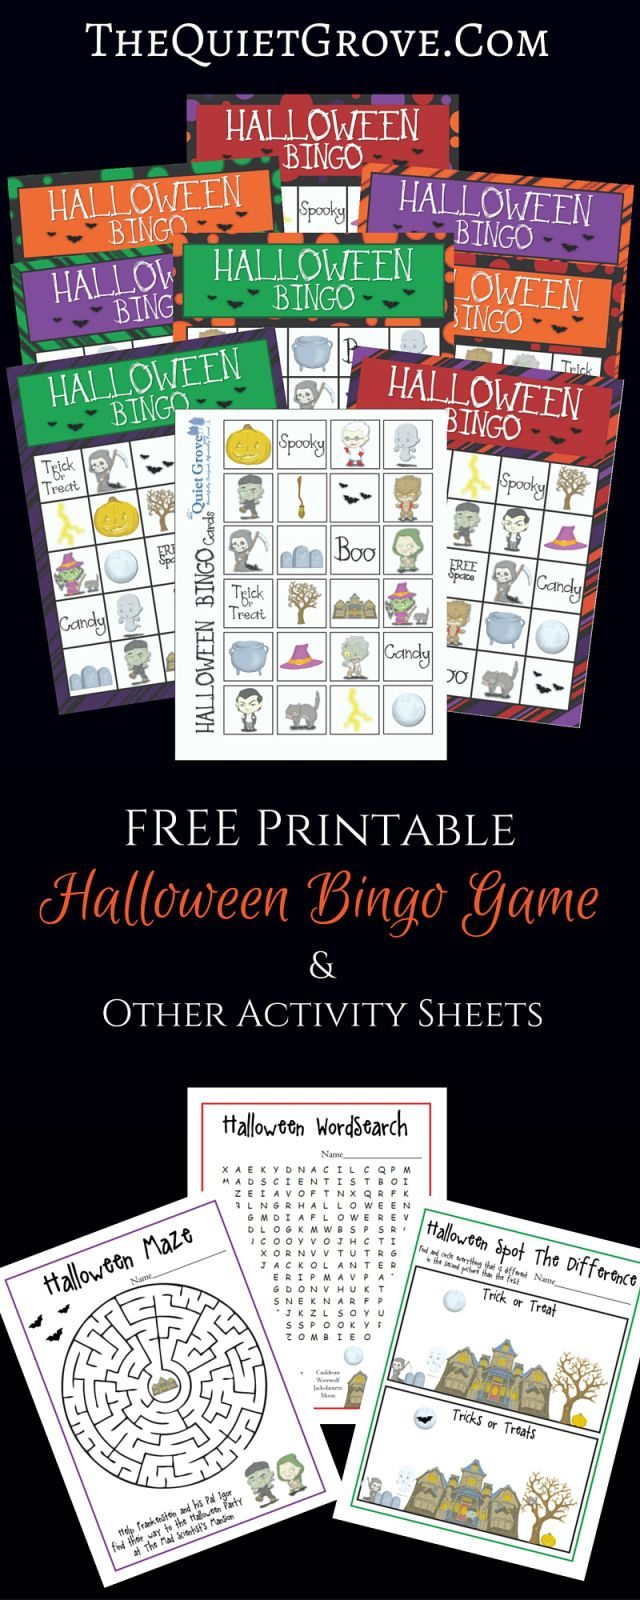 free printable halloween bingo game other activity sheets - Preschool Halloween Bingo